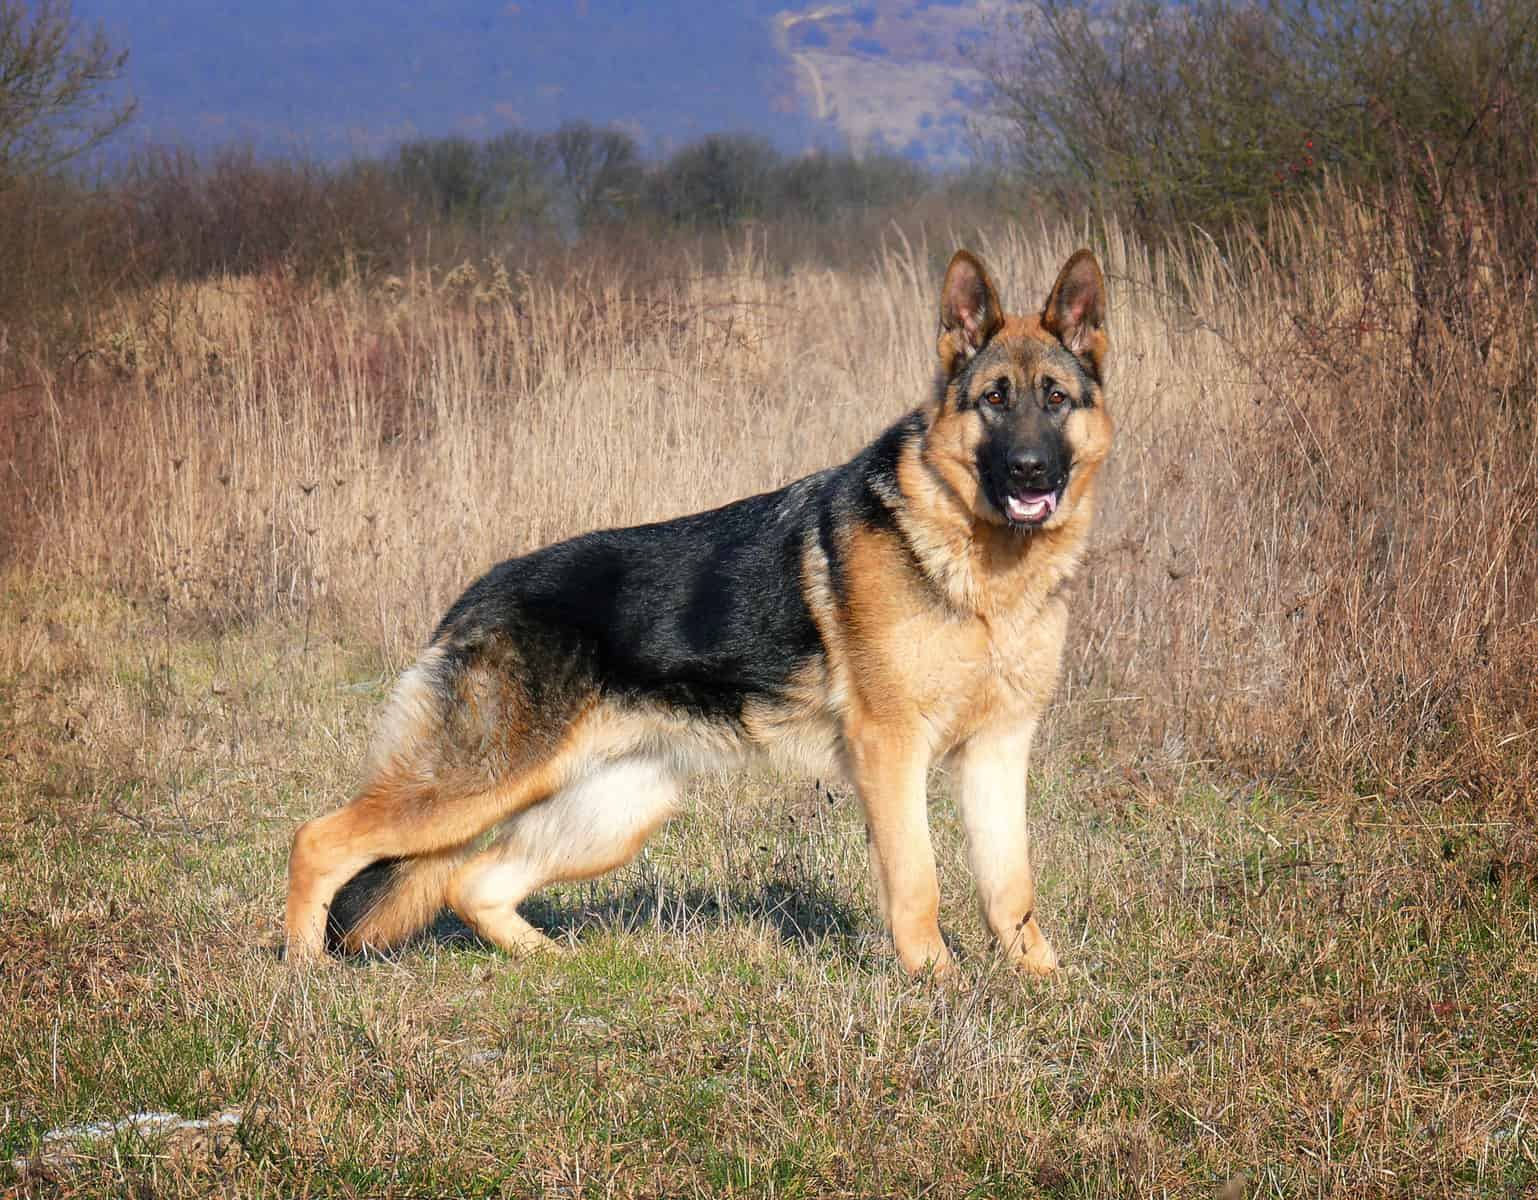 The German Shepherd on a walk